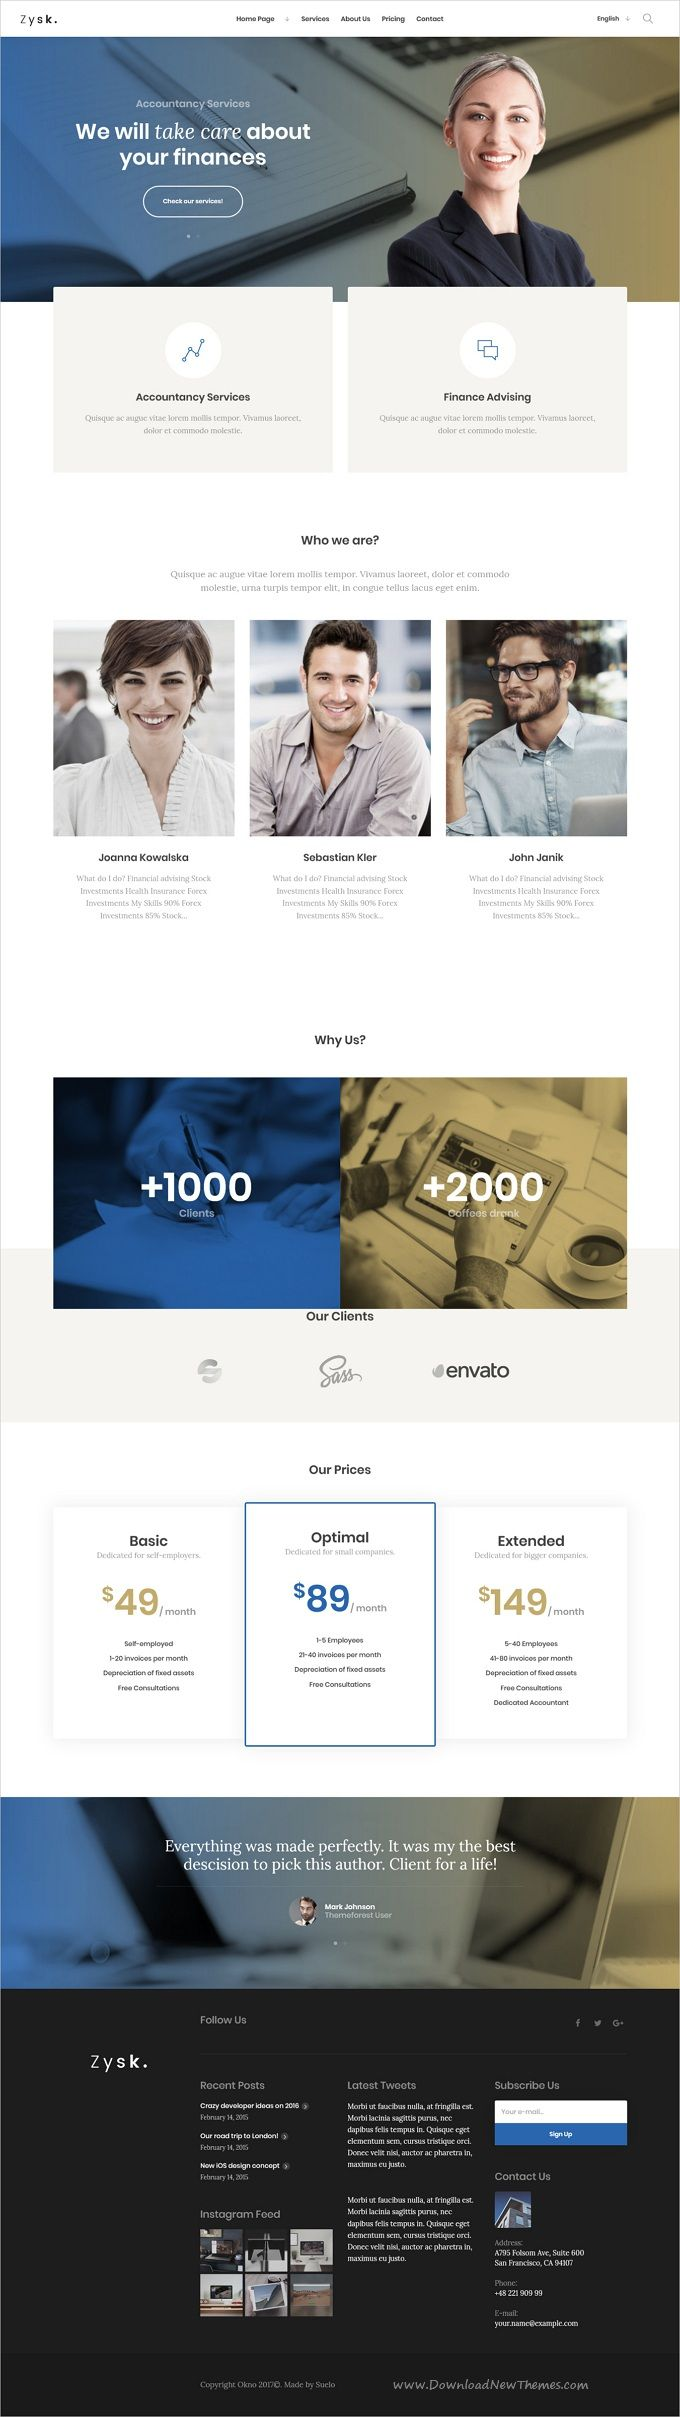 Zysk is smooth and stylish 7in1 responsive #WordPress theme for #accountancy, business, #finance and consulting services professional website download now..